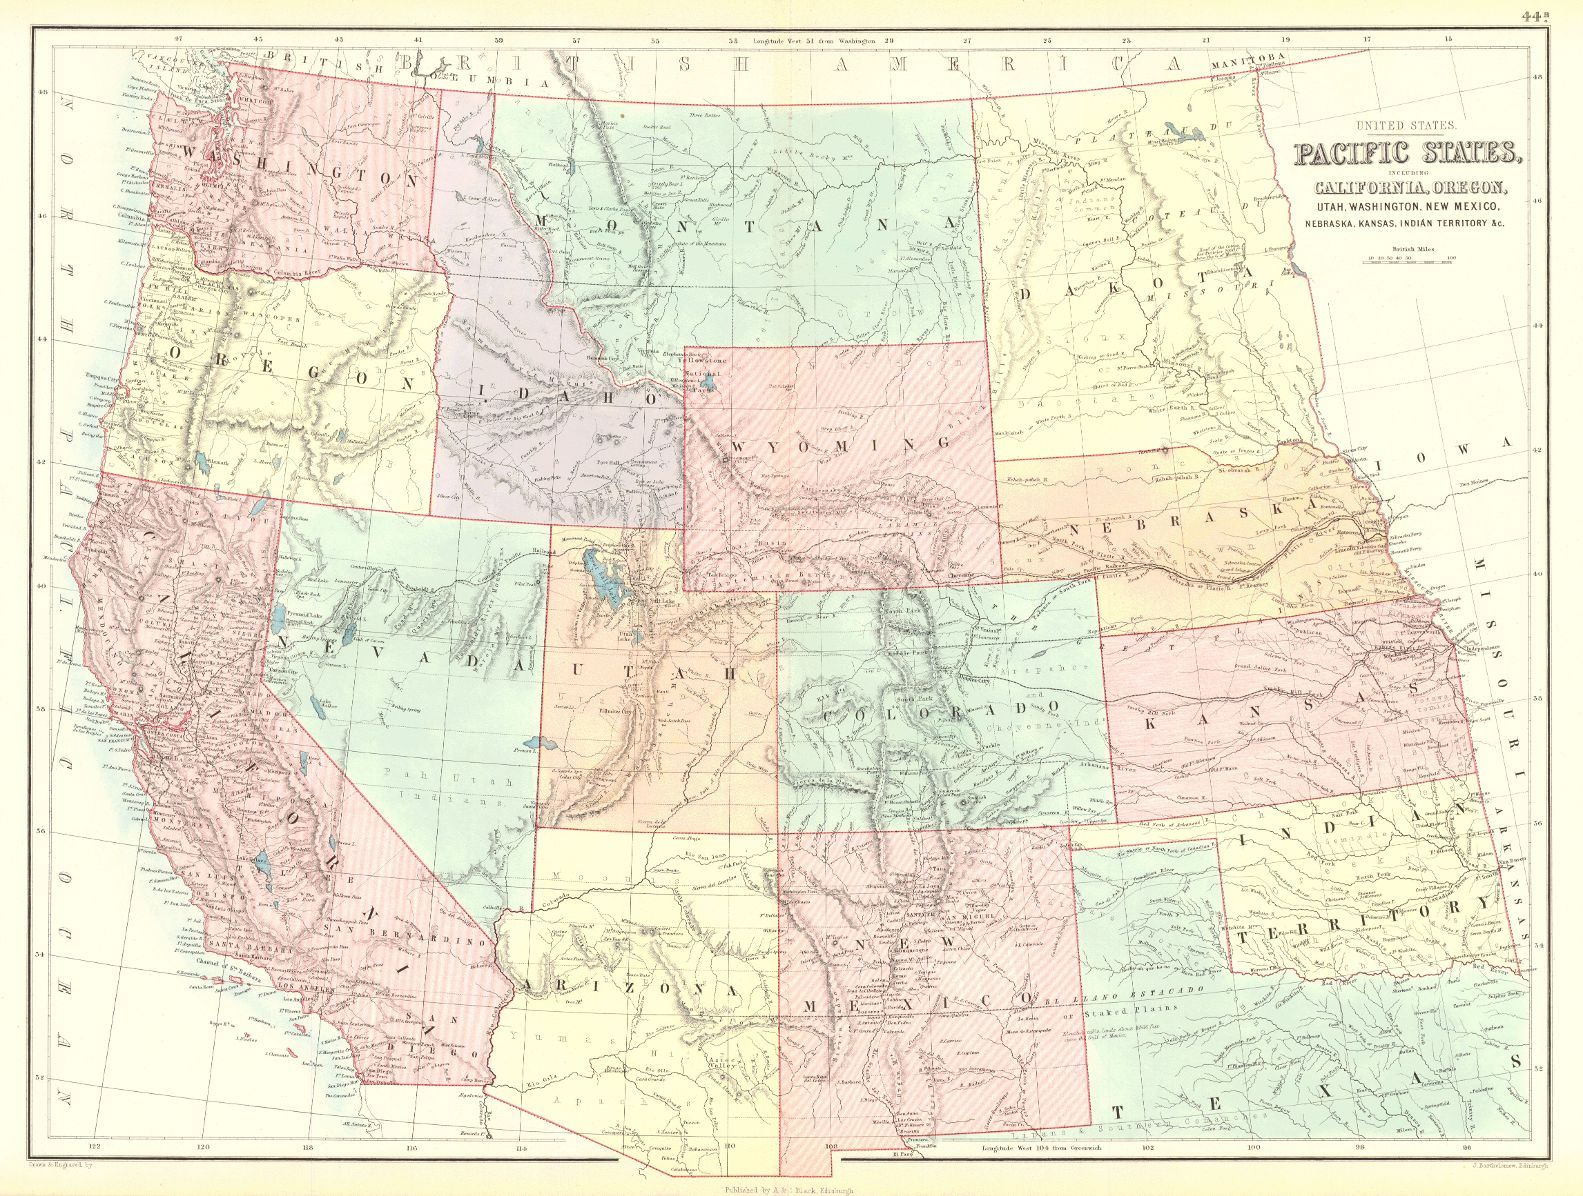 United States. Pacific States, Includes California, Oregon